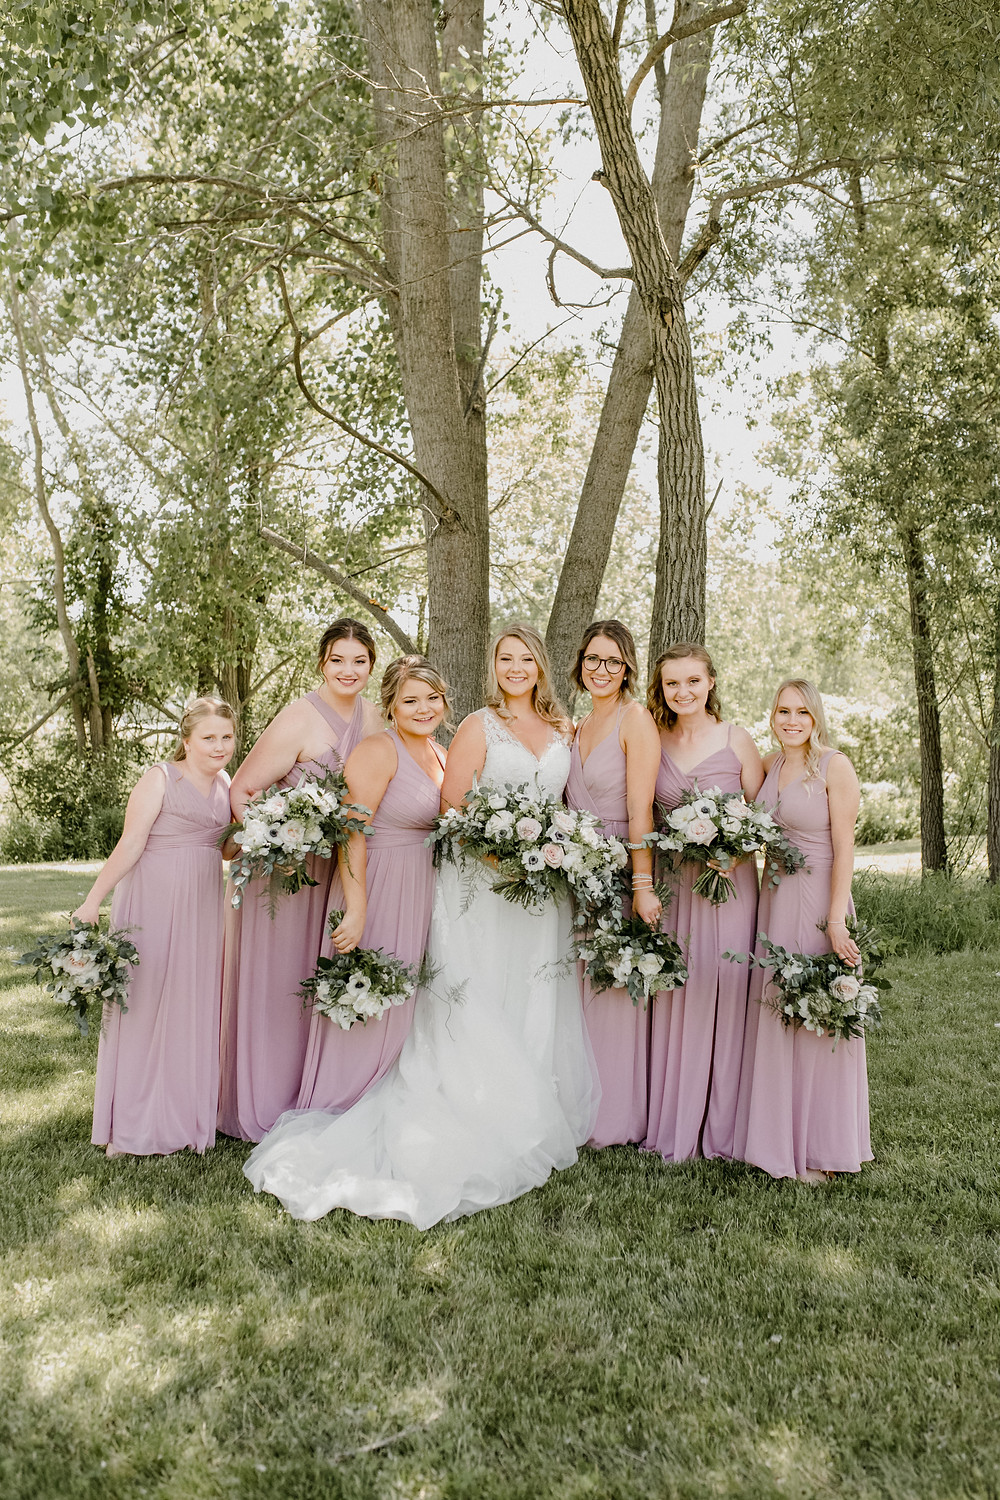 Mauve summer wedding at the Pleasant Valley Trout Farm in Sparta, Ontario. Photo by Sara Wiebe Photography.